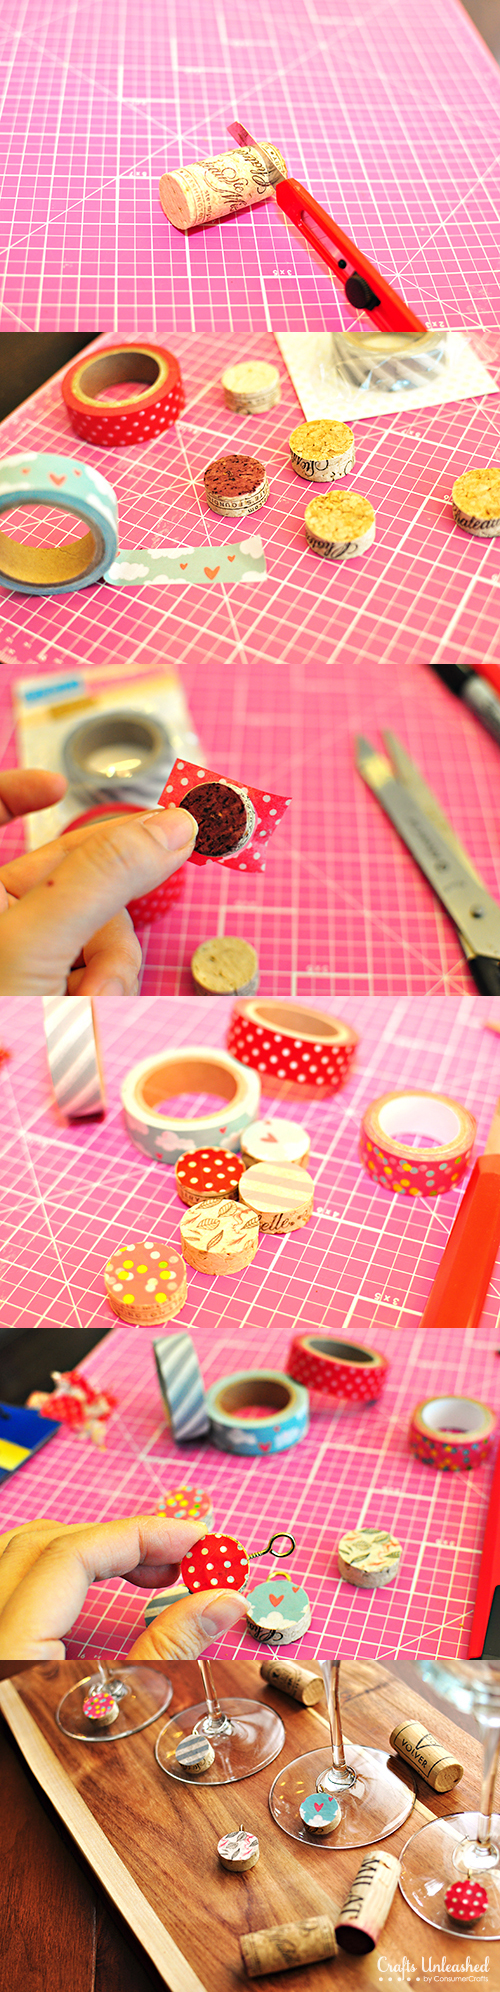 Pendientes con washi tape y reciclando tapones de corcho craft on washi manualidades - Manualidades con corchos ...